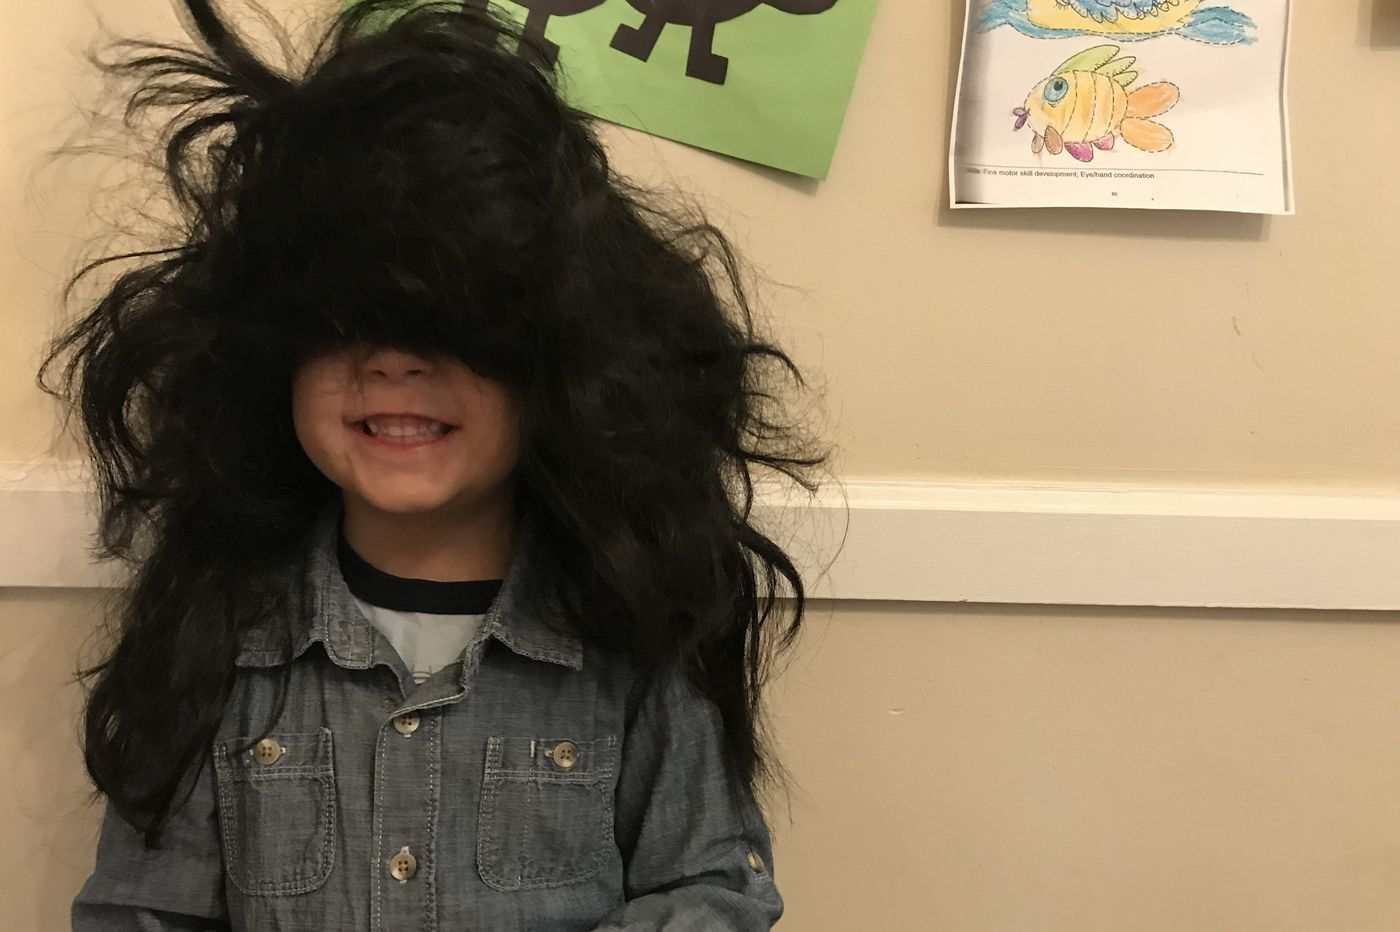 A Steven Tyler wig, a 'Hammer' — and Halloween laughter galore   Maria Panaritis